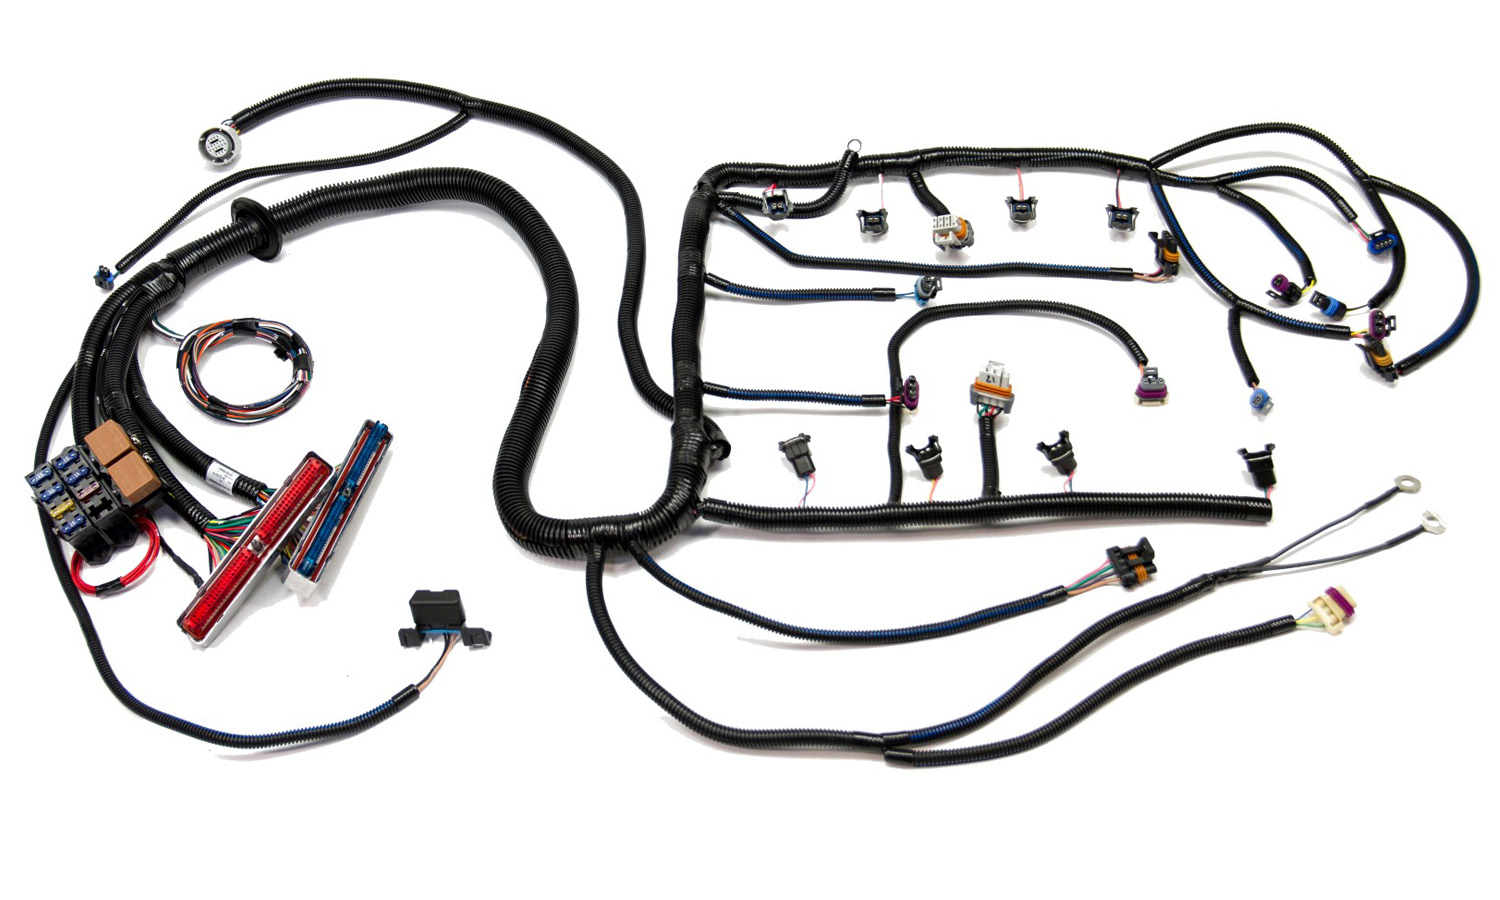 Throttle Body Wiring Diagram Together With Ls1 Wiring Harness Diagram